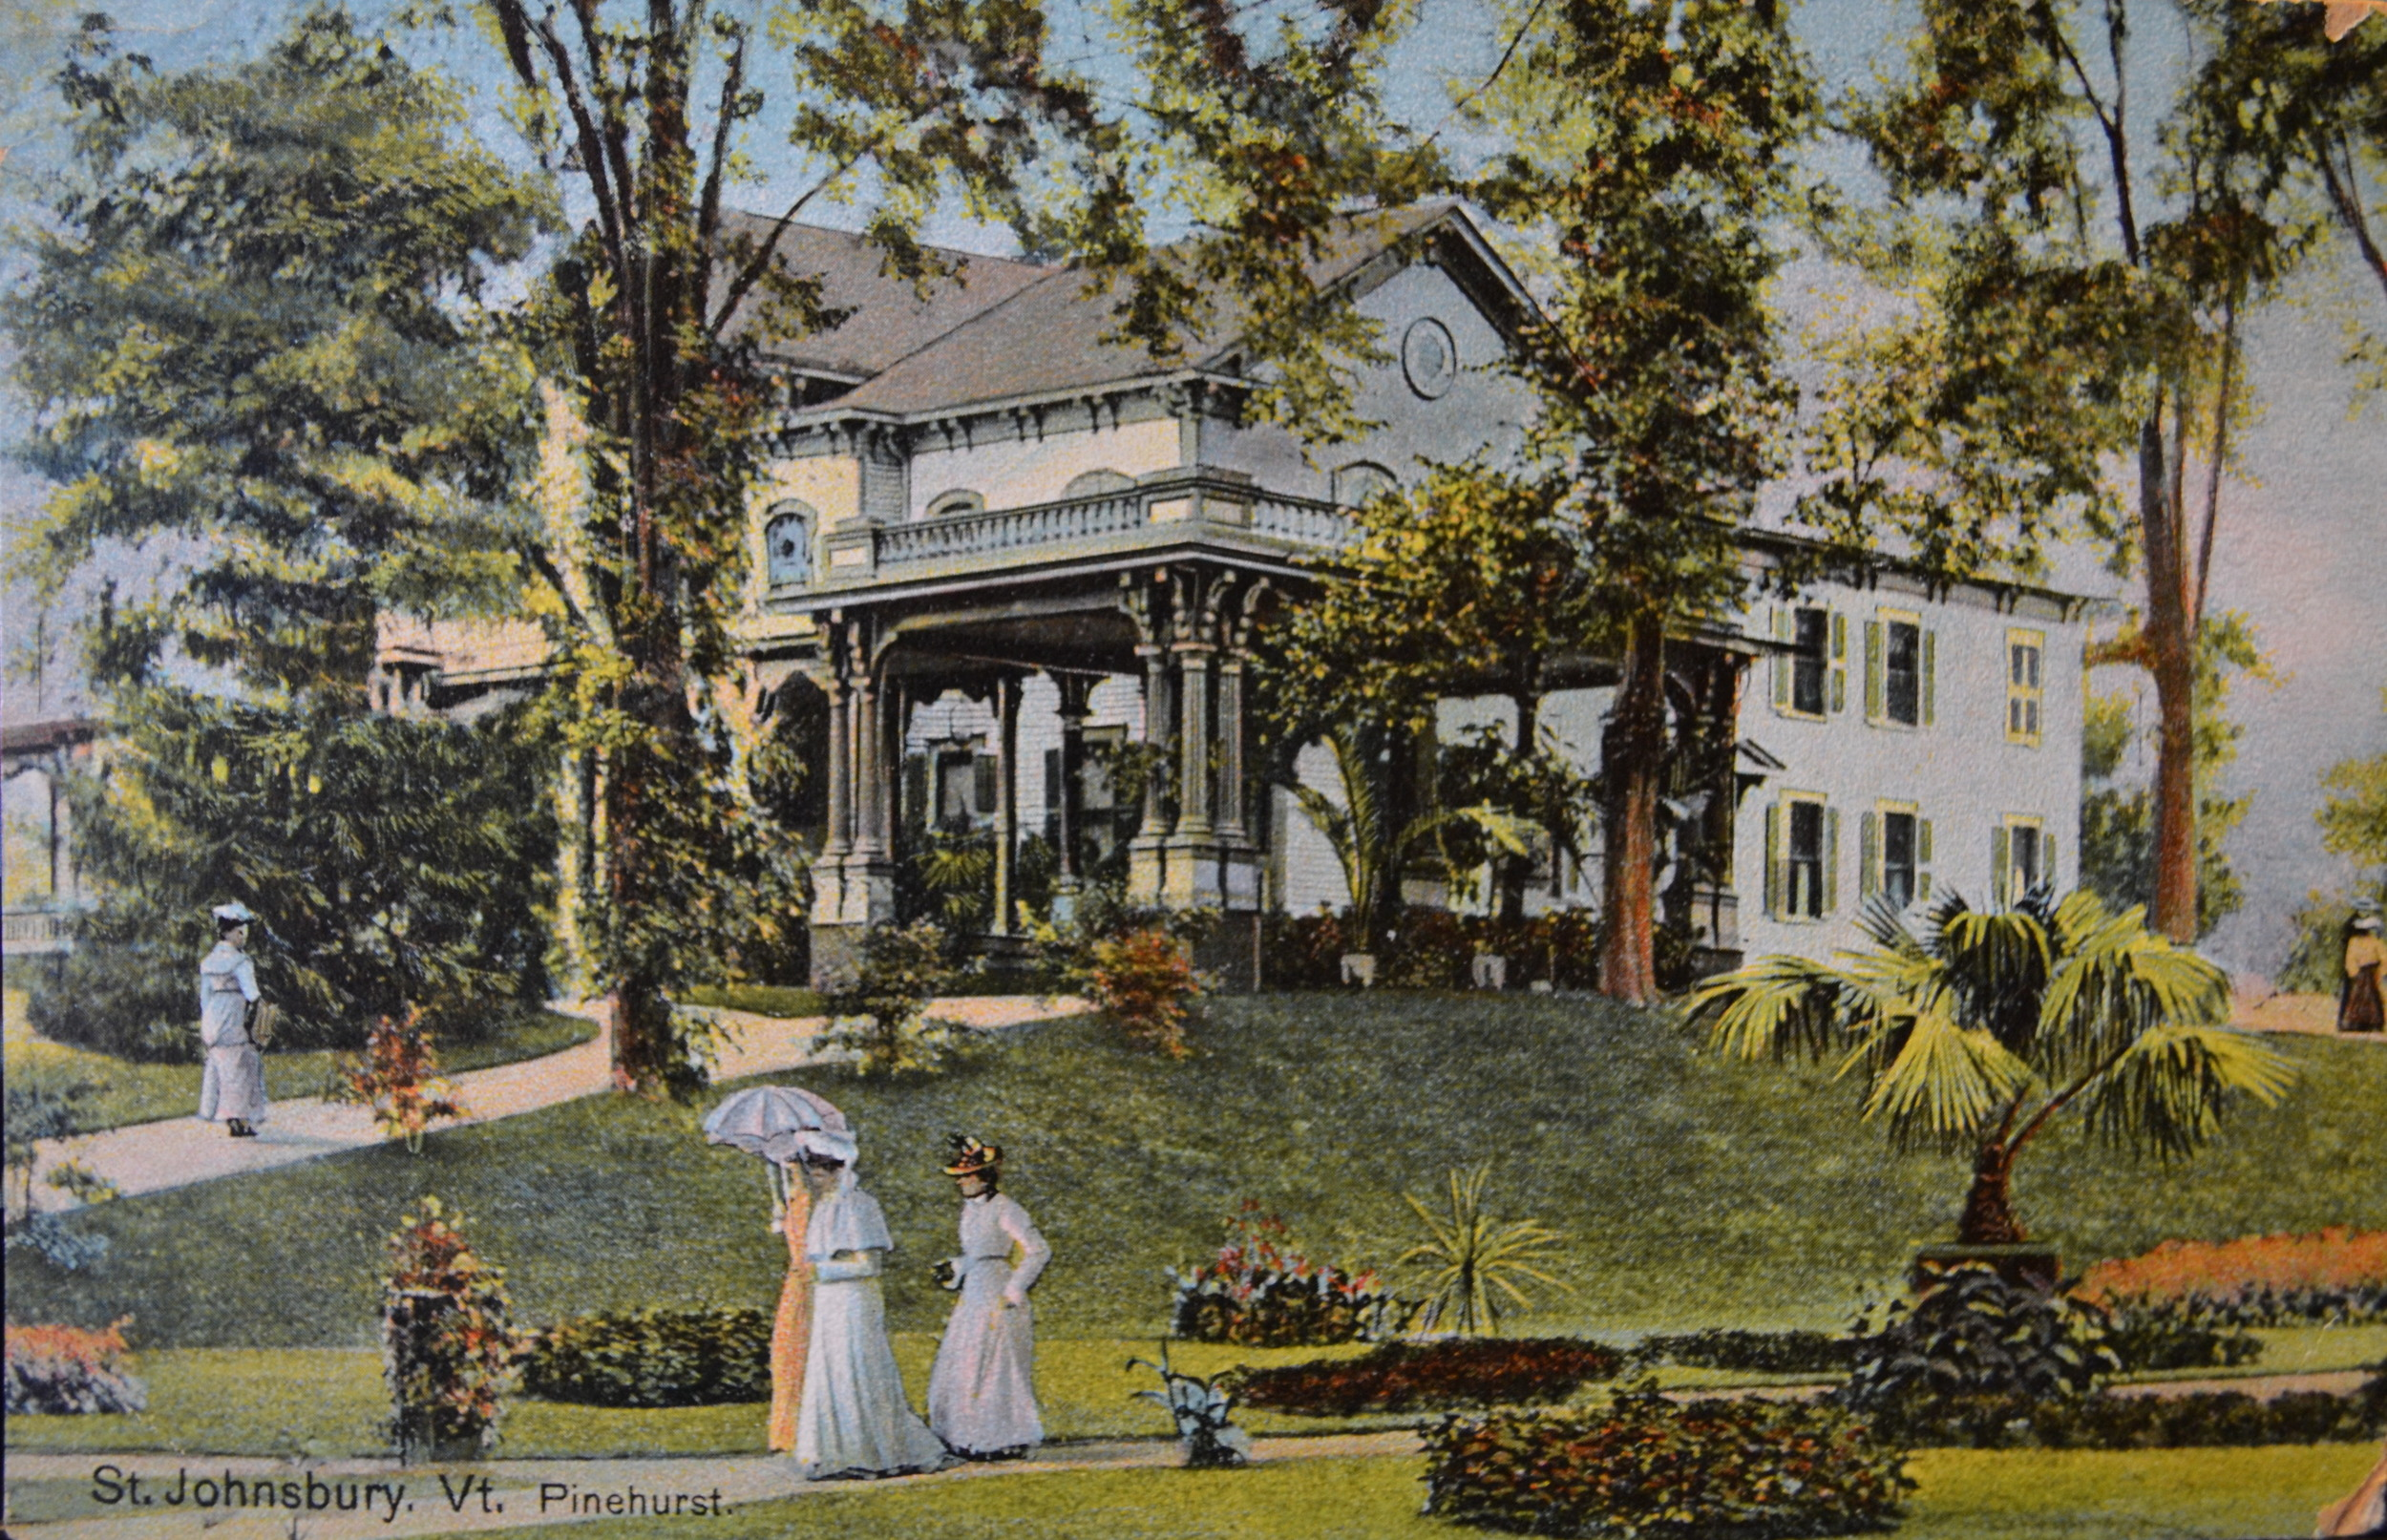 (Pinehurst. Image. George Heon collection. St. Johnsbury Athenaeum, St. Johnsbury, VT.)